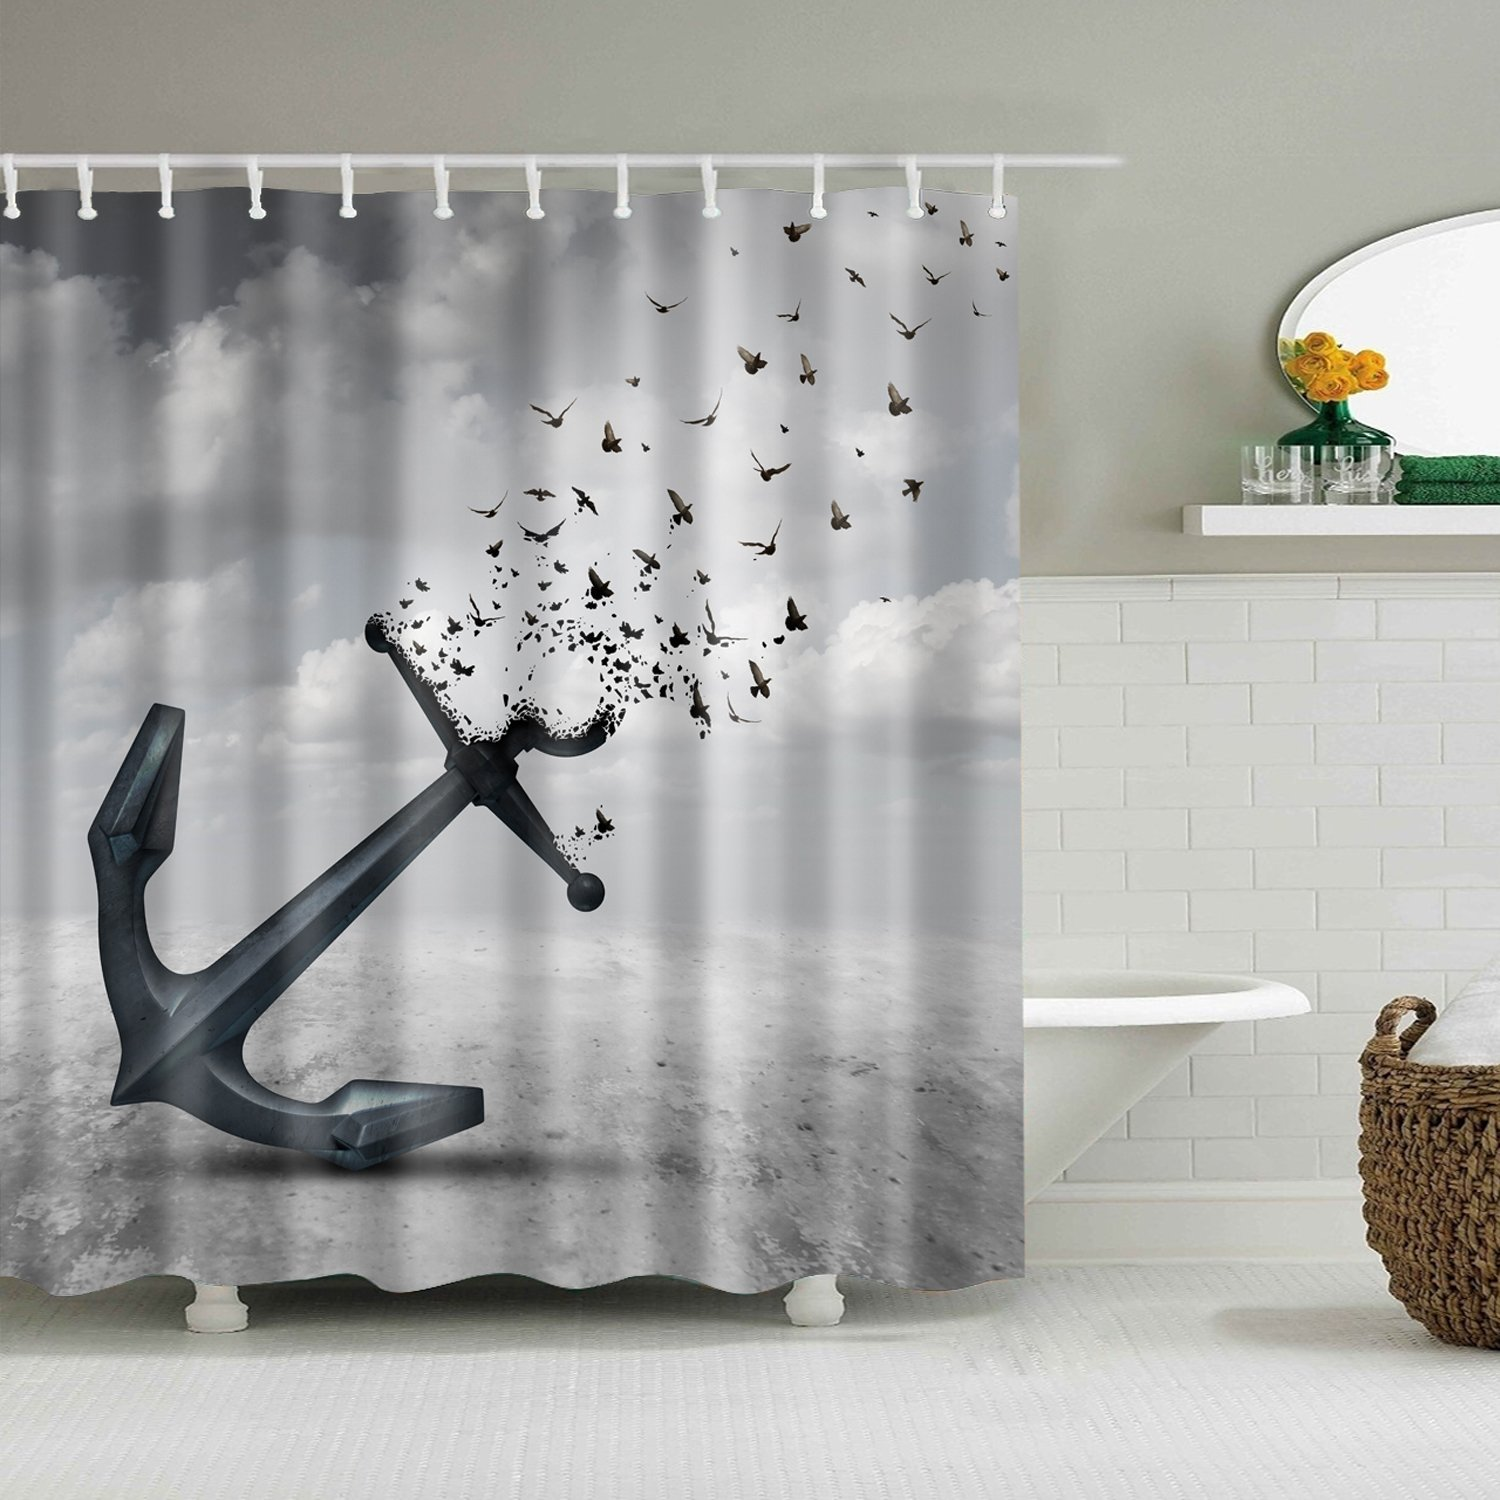 Amazon ColourLife Vintage Retro Anchor Birds Shower Curtains 72 X Inches Bathroom Decor Polyester Fabric Waterproof Mildew Resistant Bath